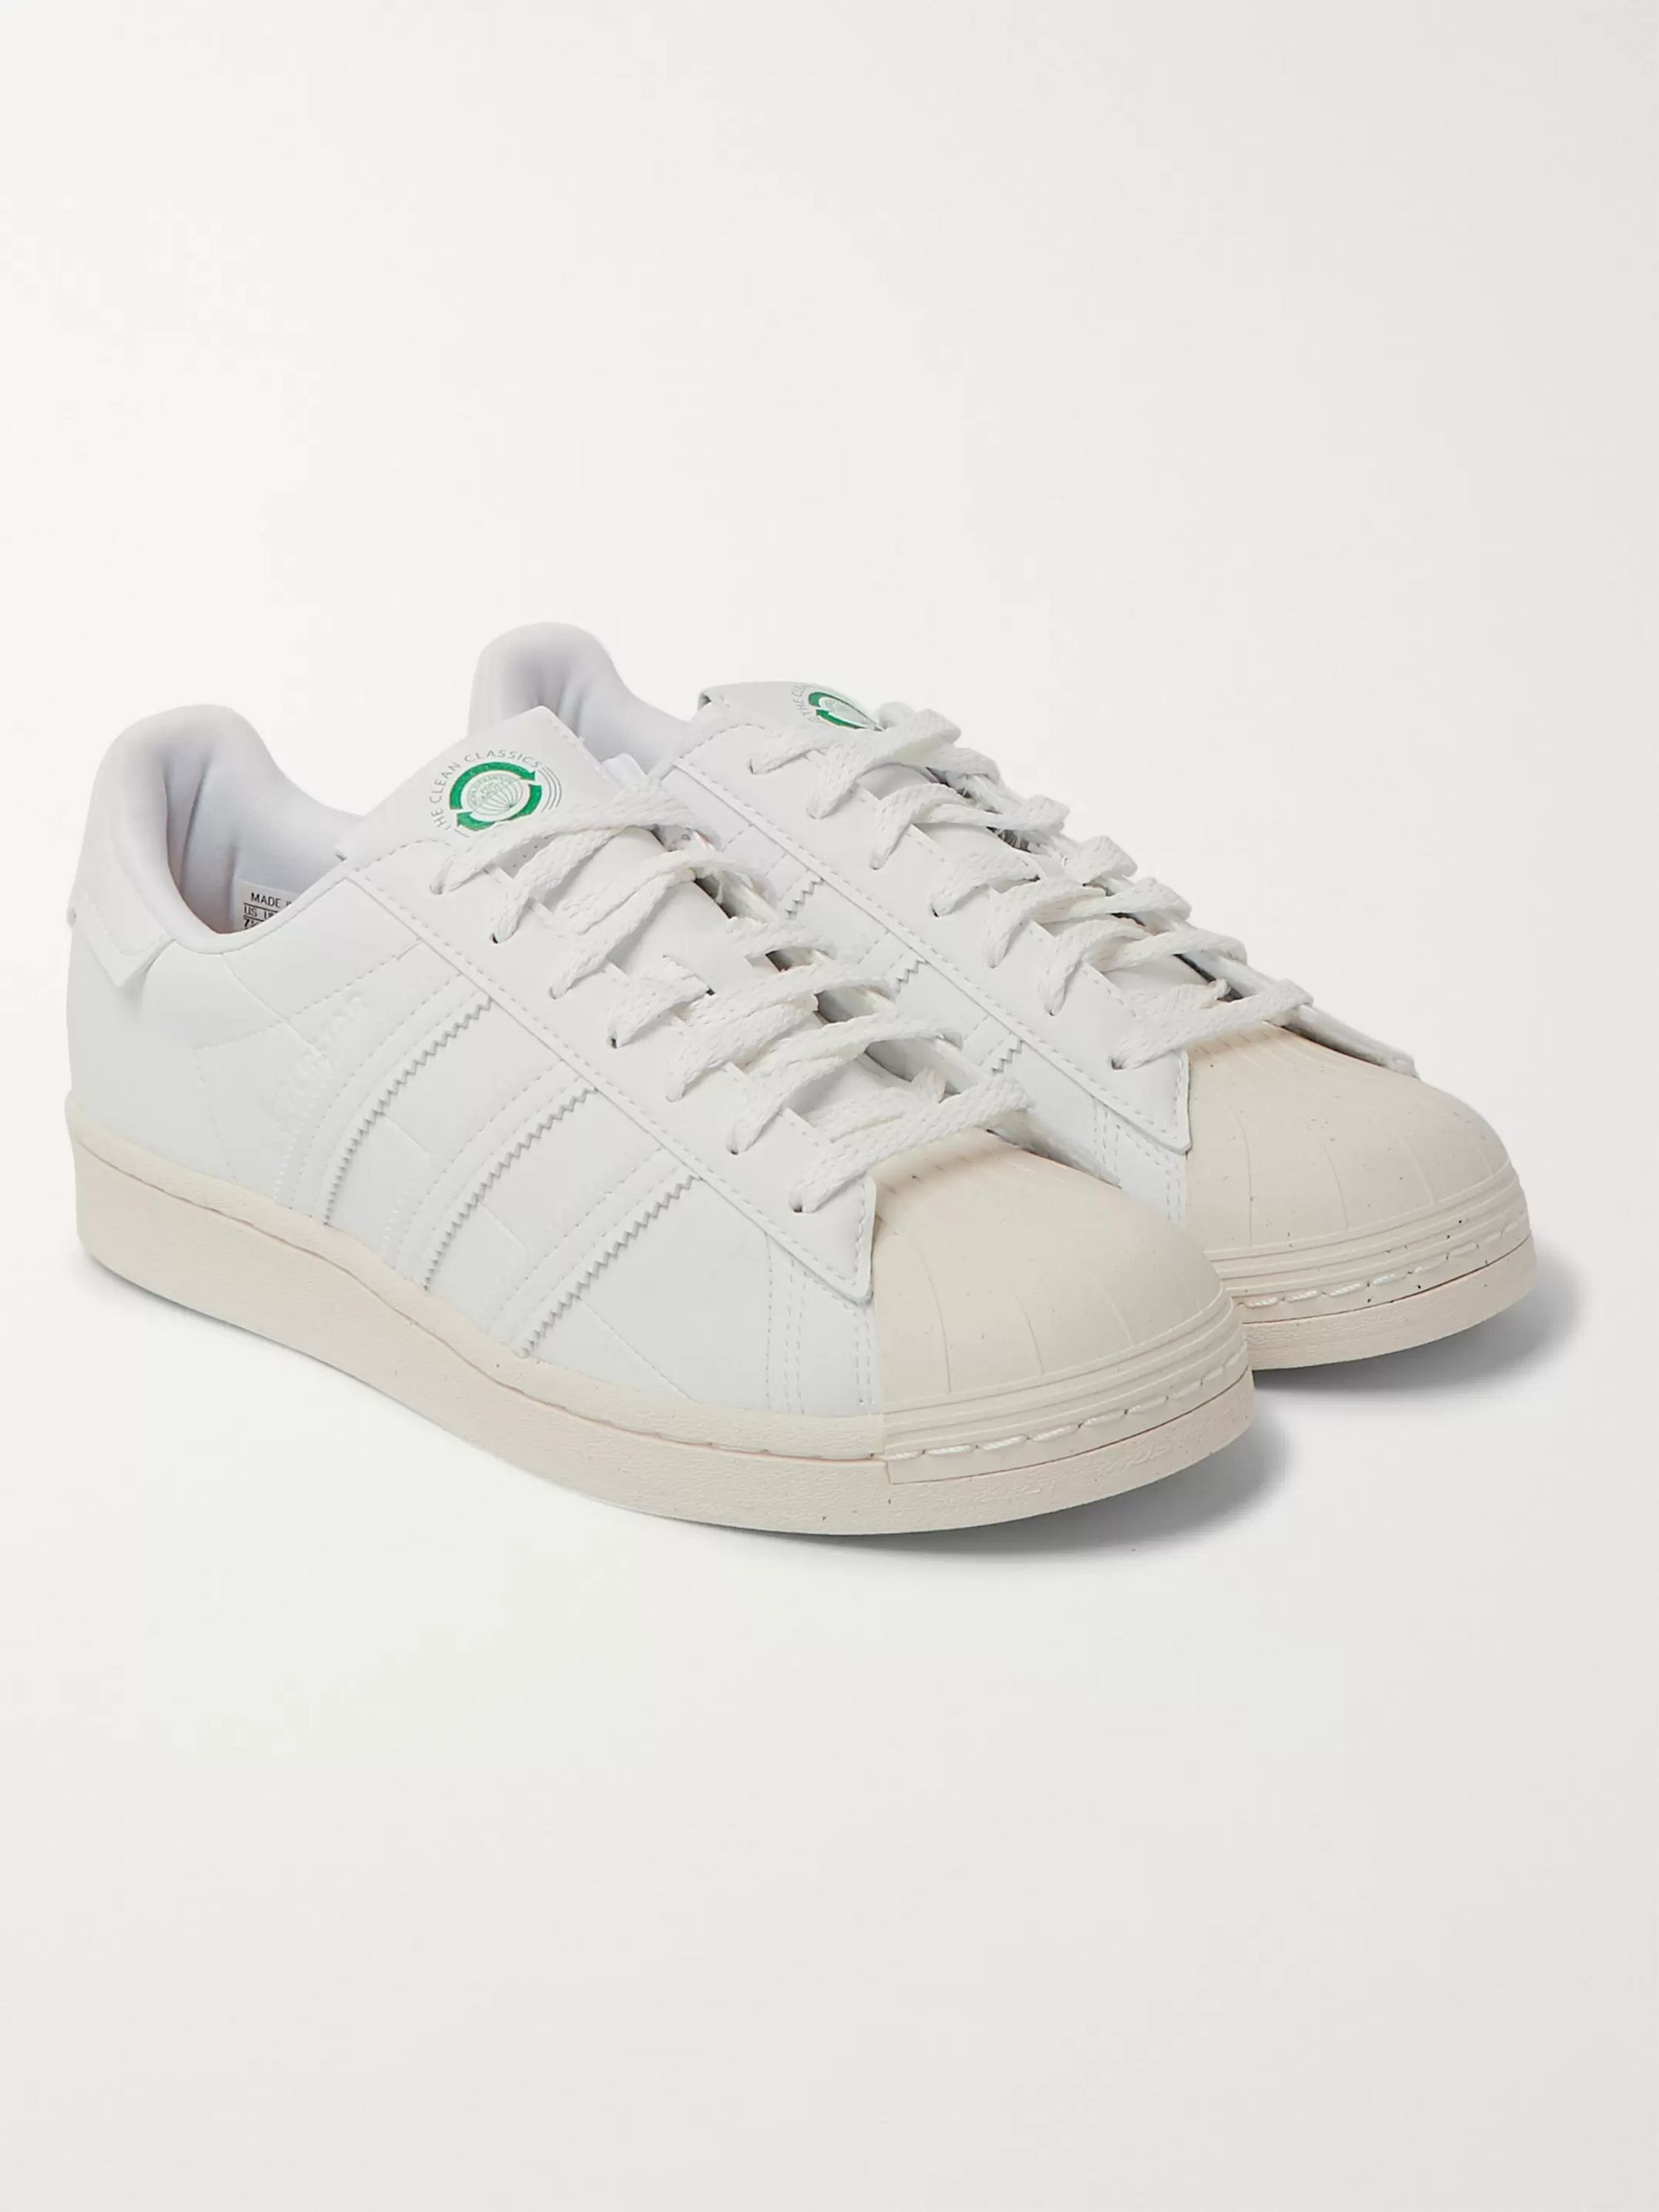 adidas clean classic superstar